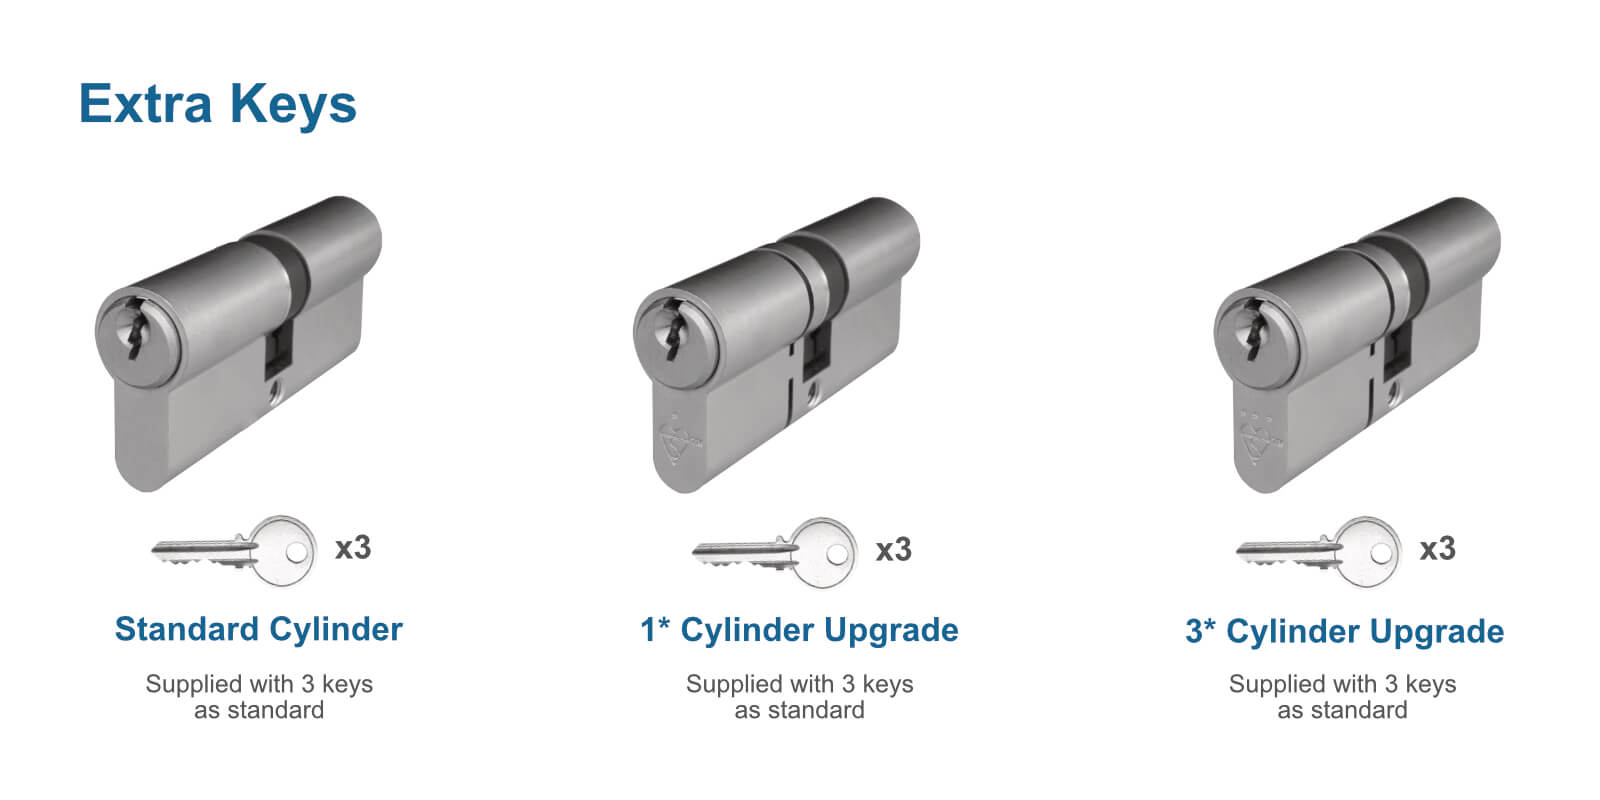 Standard issue cylinder with 5 keys and security upgrade cylinder with 3 keys